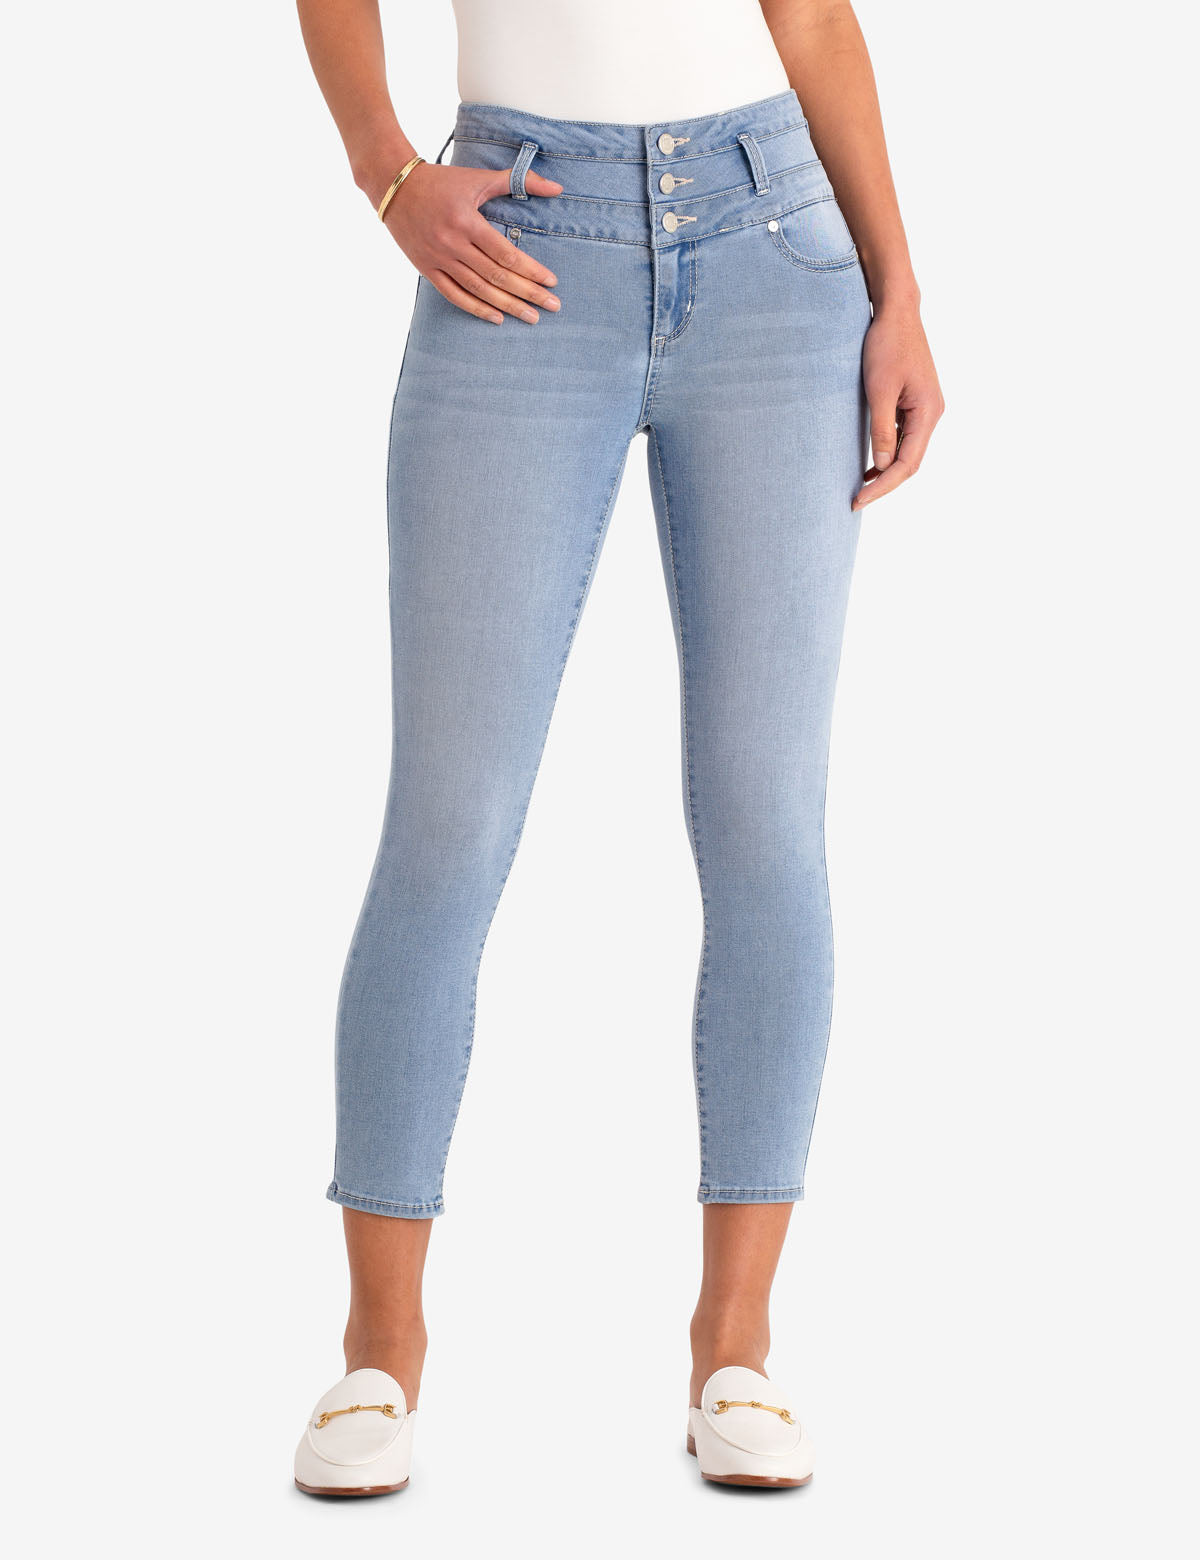 STACKED WAIST CROPPED JEGGING - U.S. Polo Assn.